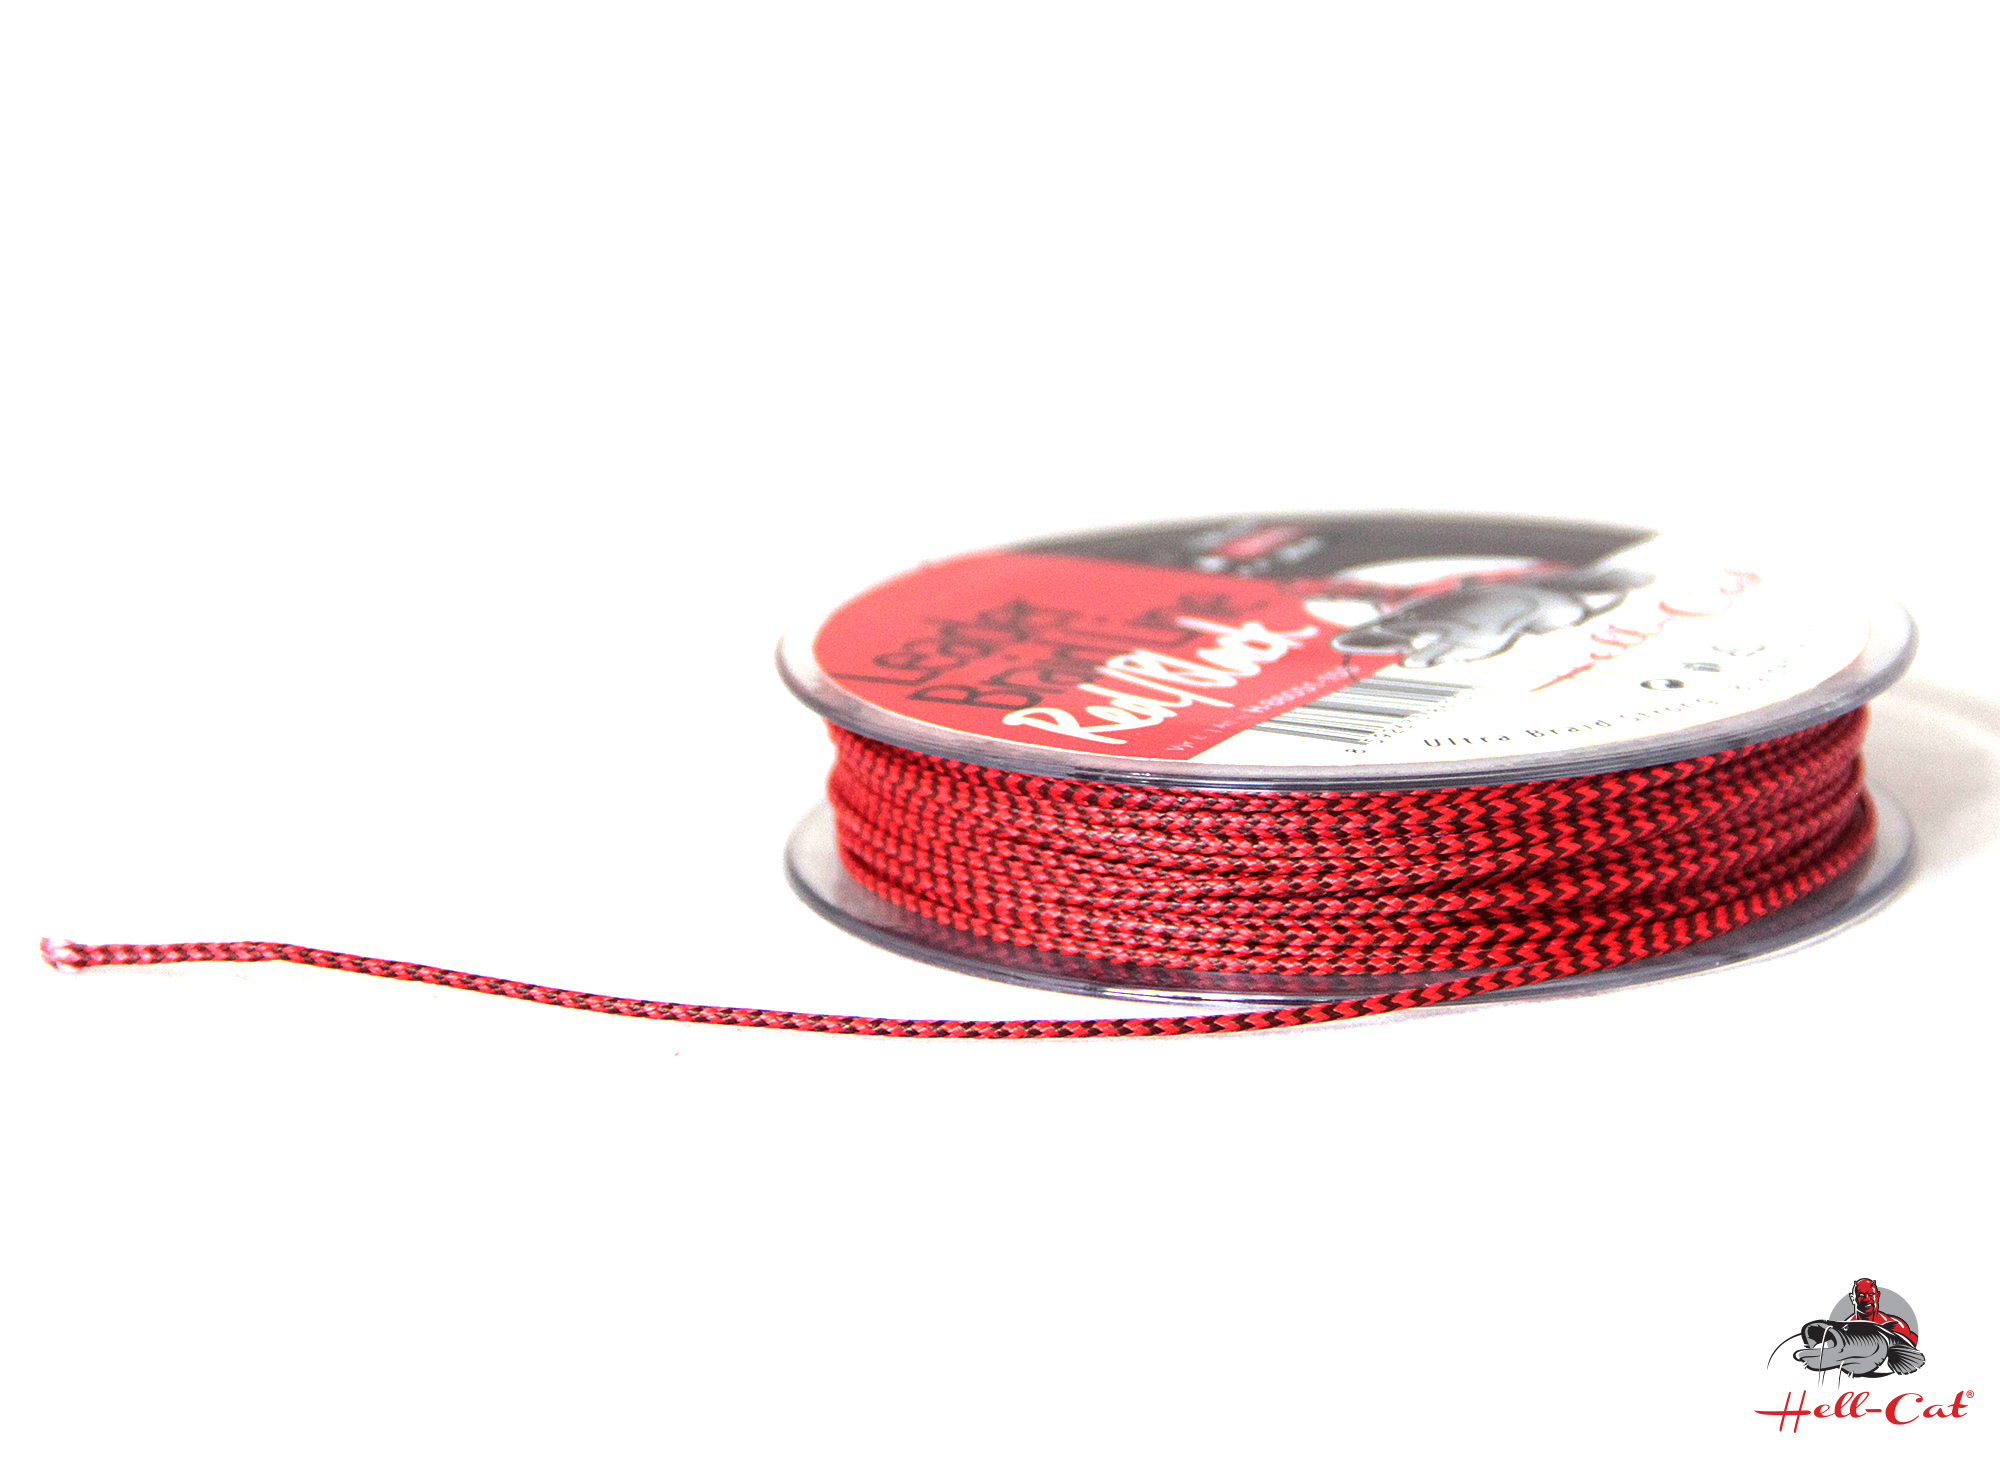 Hell-Cat - Návazcová šňůra Leader Braid Line Red/Black 1,20mm - 20m - 100kg